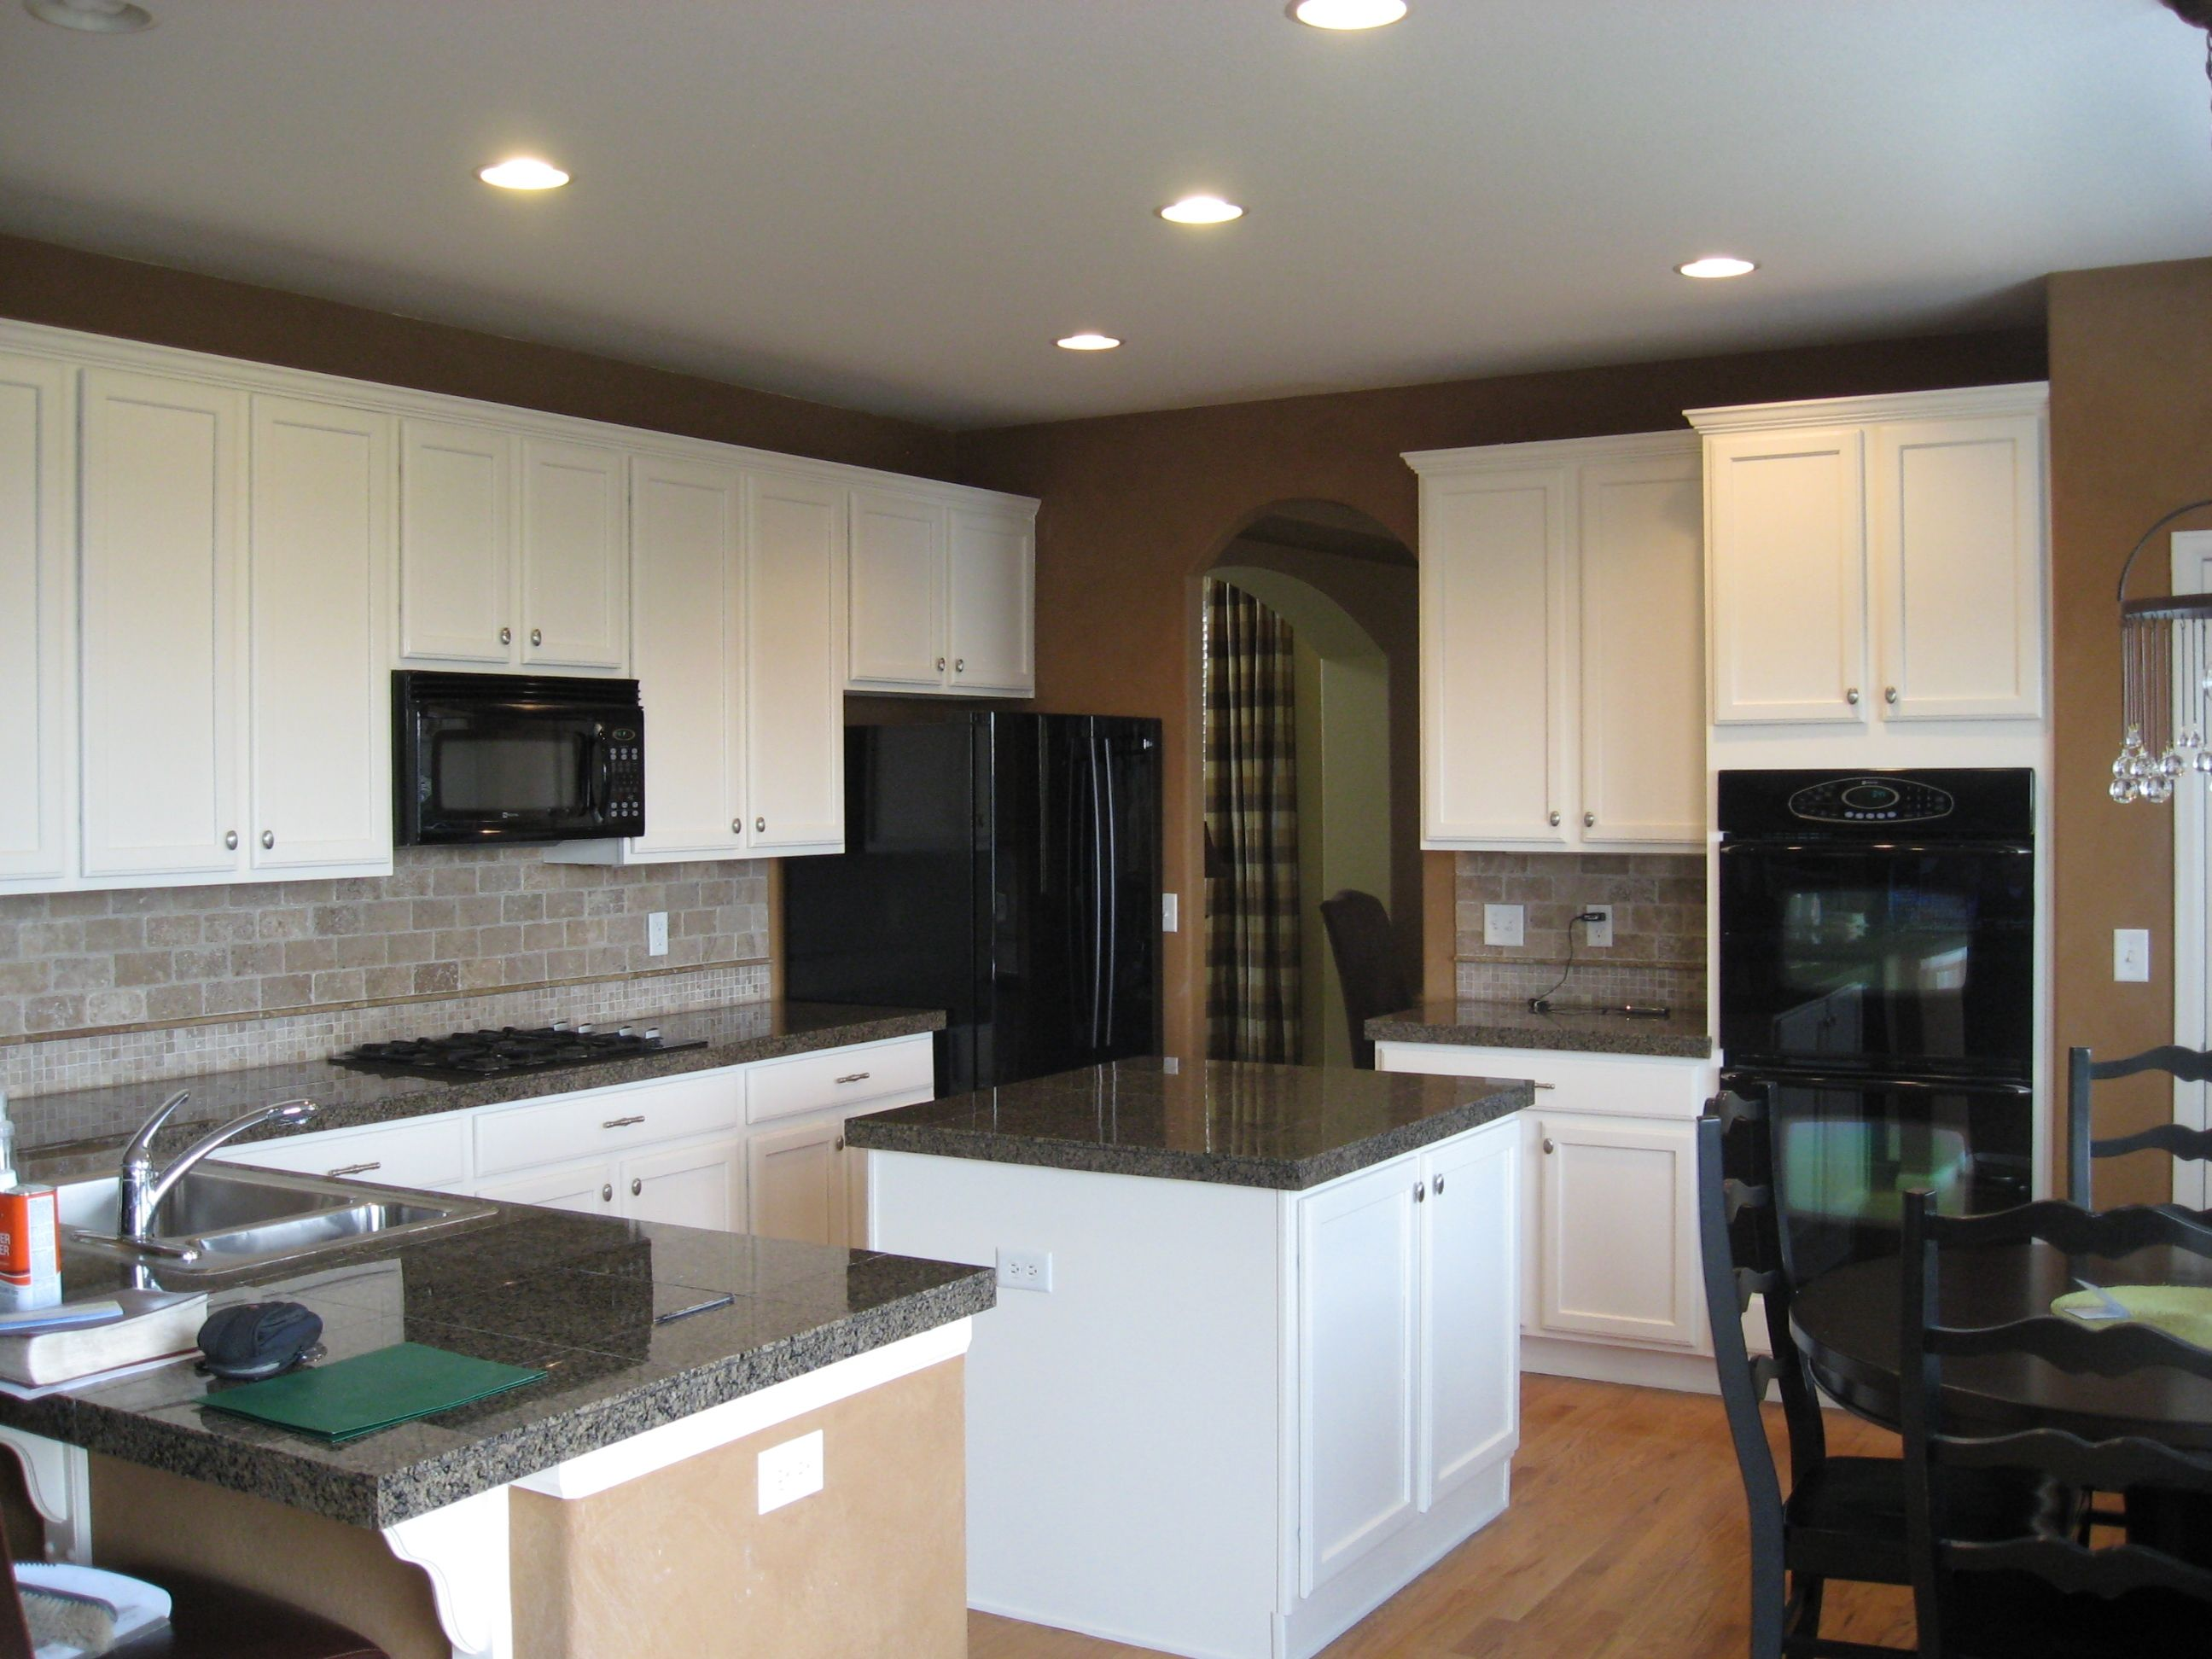 Best Paint Colors For Kitchen With White Cabinets Black Countertop Grey Backsplash Best Paint Colors Dark Cabinets